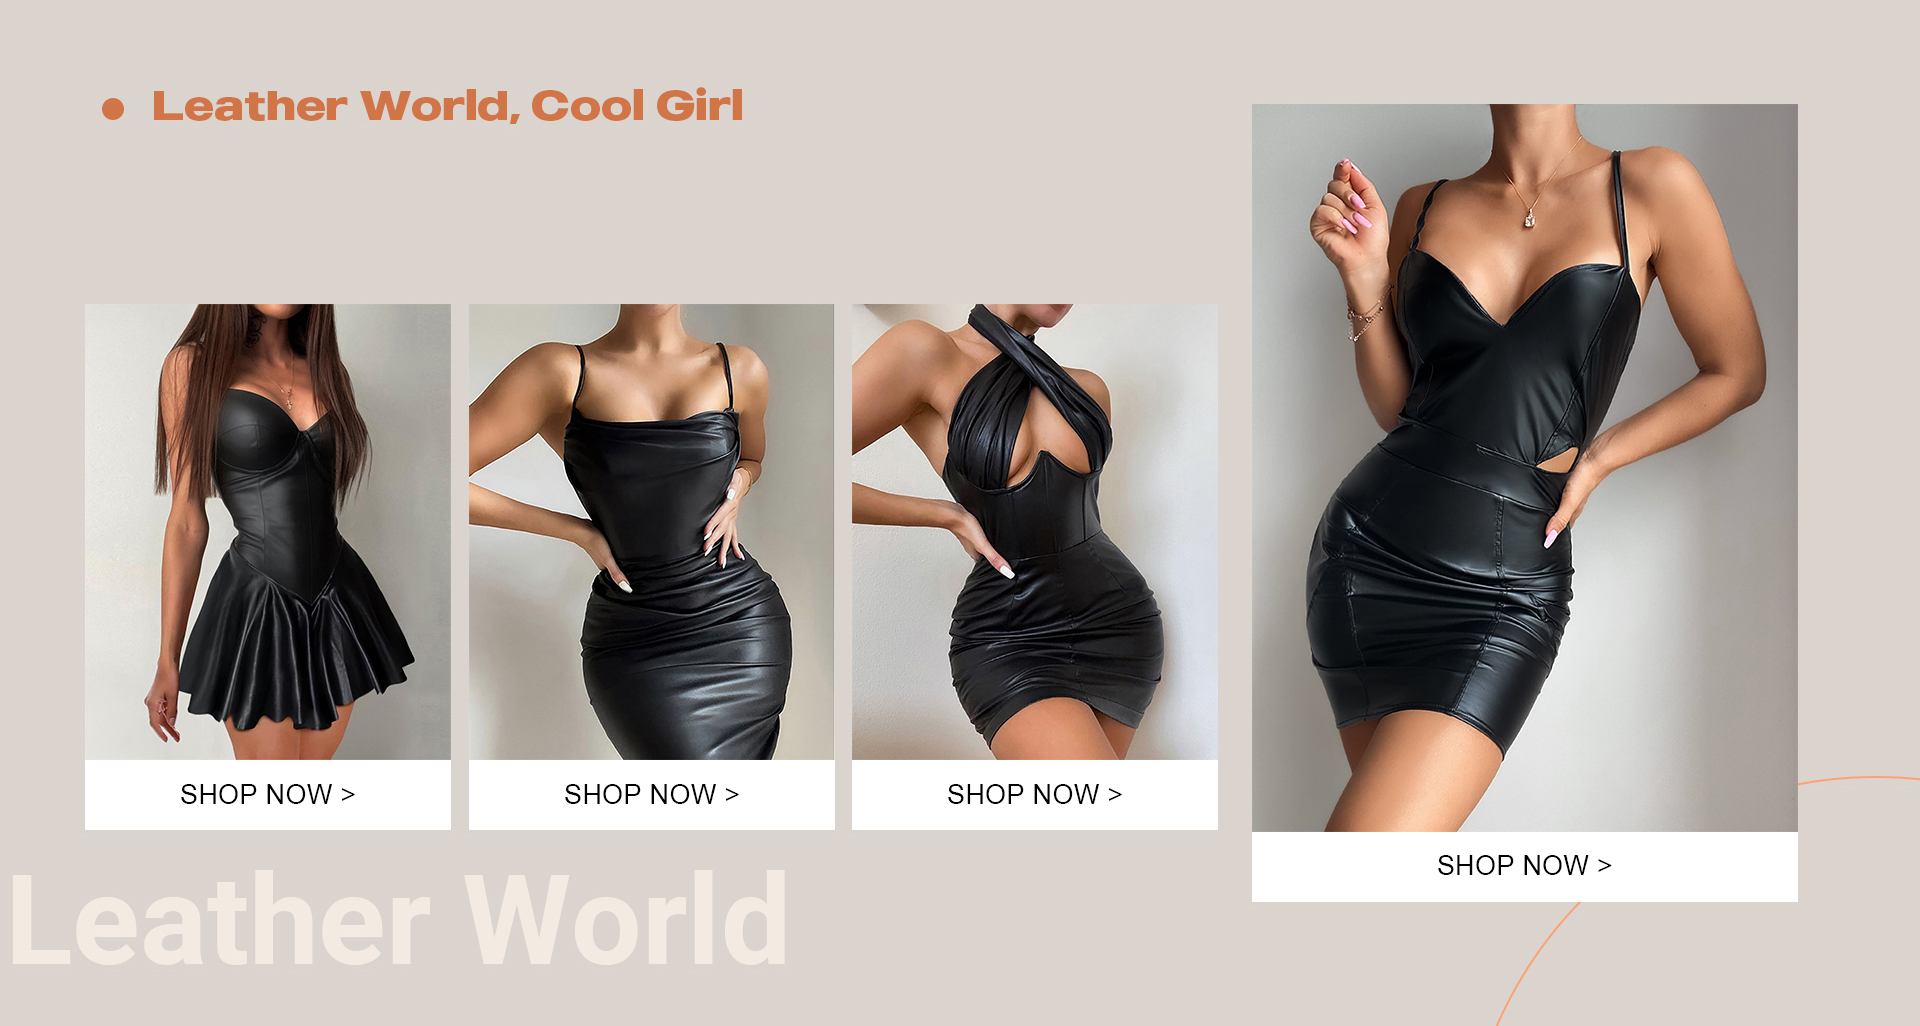 Leather world,cool girl